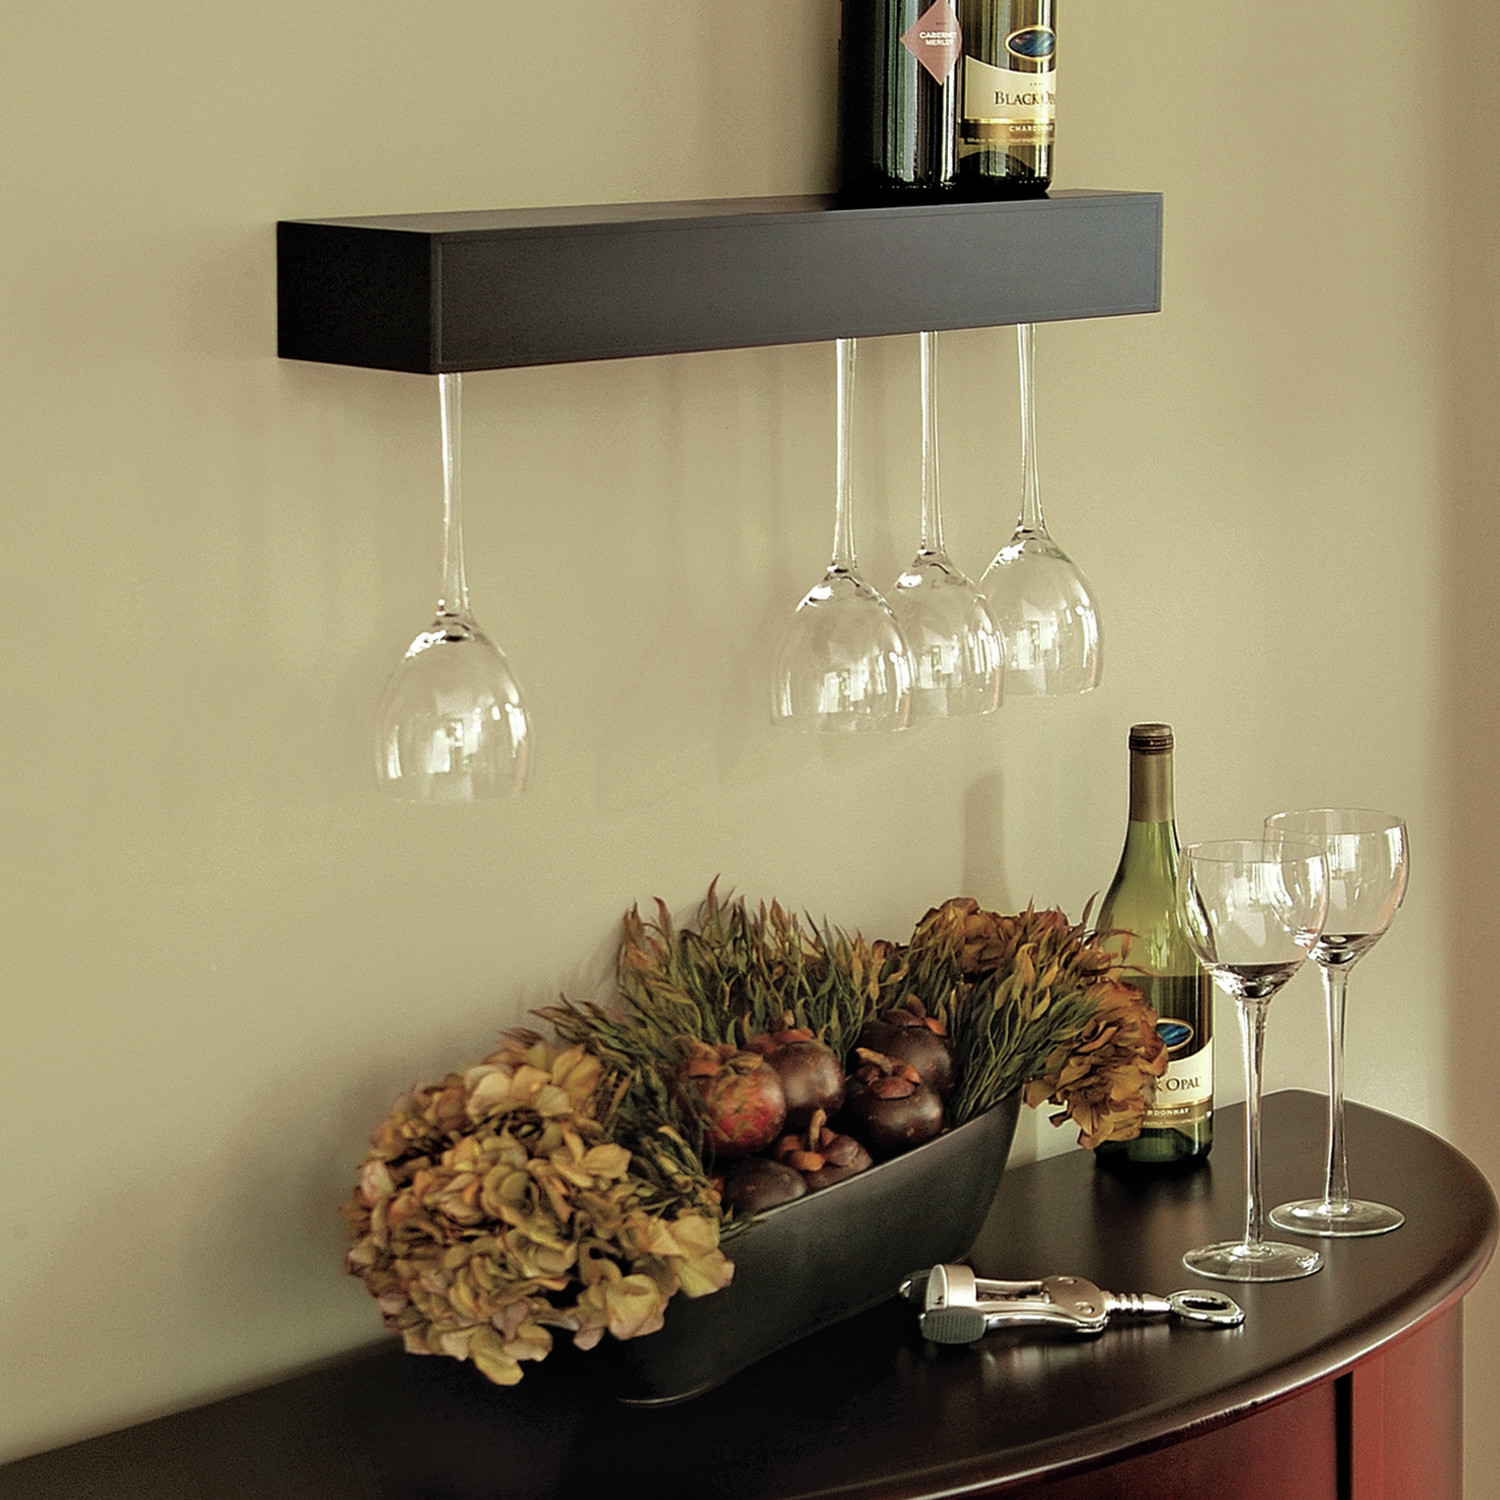 Elegant Wall Mounted Wine Glass Rack | About My Blog